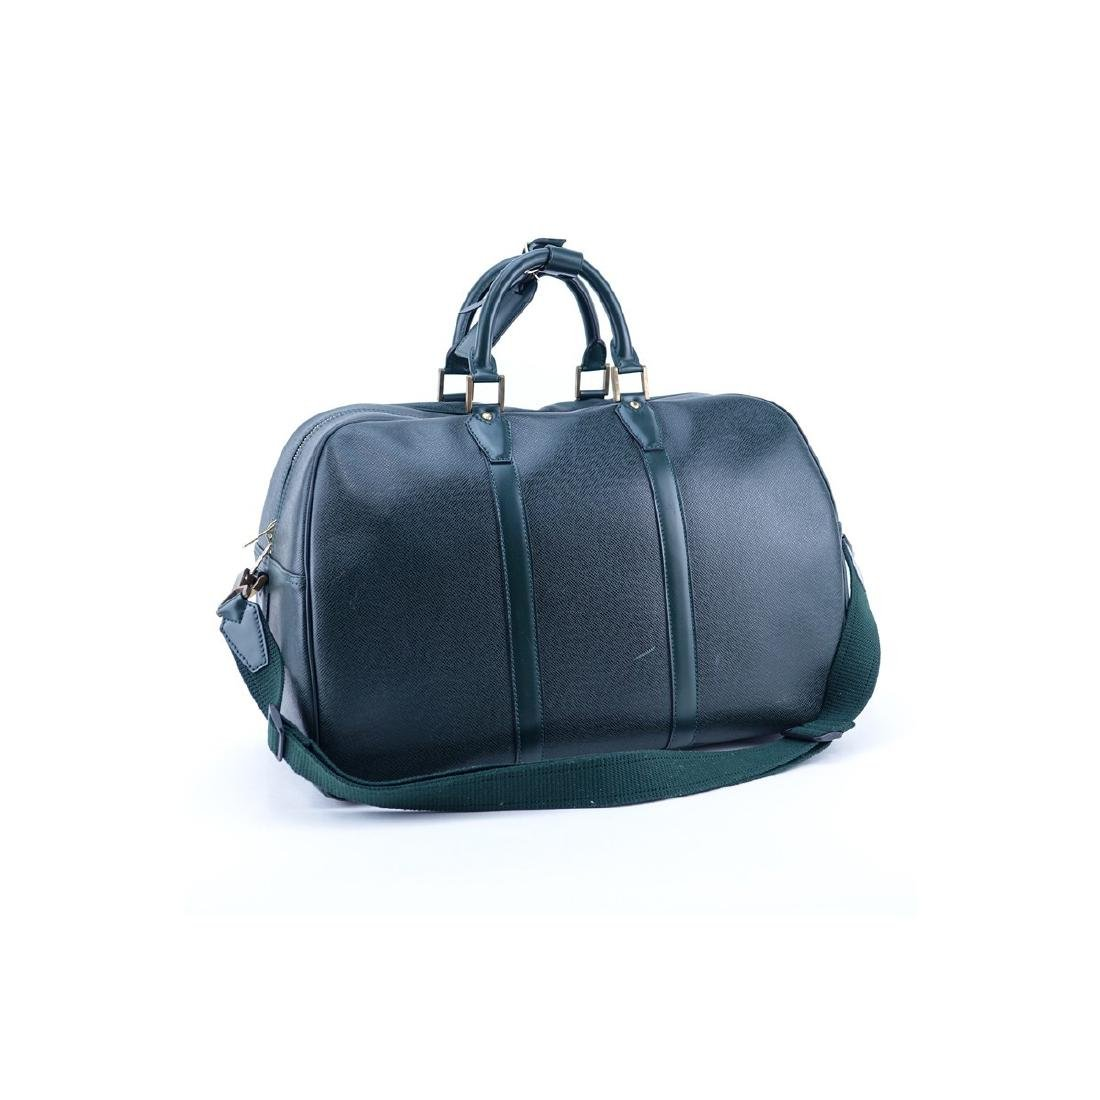 Louis Vuitton Dark Green Tiaga Leather Kendall PM